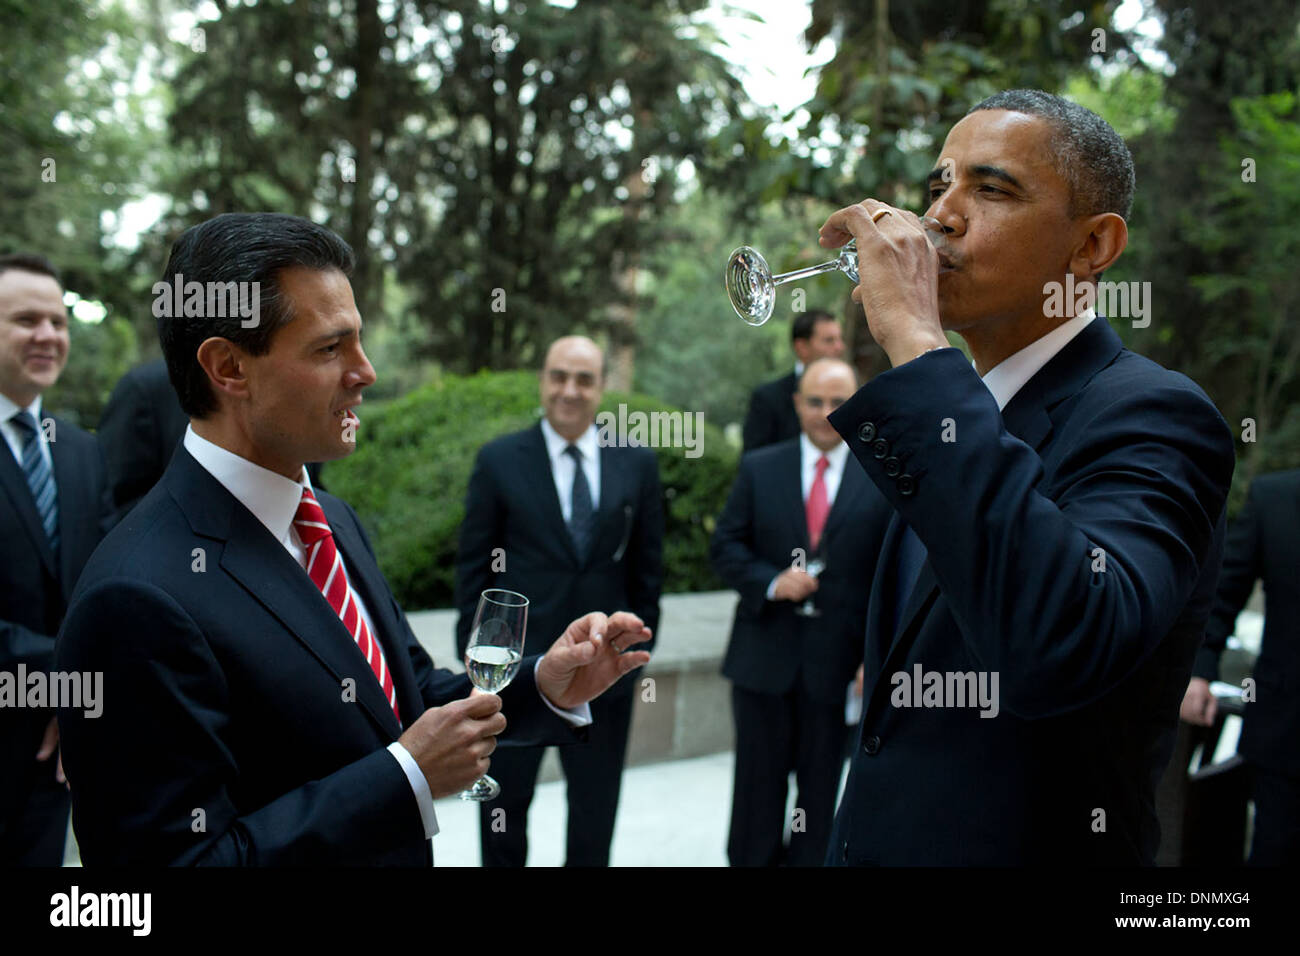 US President Barack Obama tastes a sip of tequila as the urging of President Enrique Pena Nieto of Mexico prior to a working dinner at Los Pinos May 2, 2013 in Mexico City, Mexico. - Stock Image